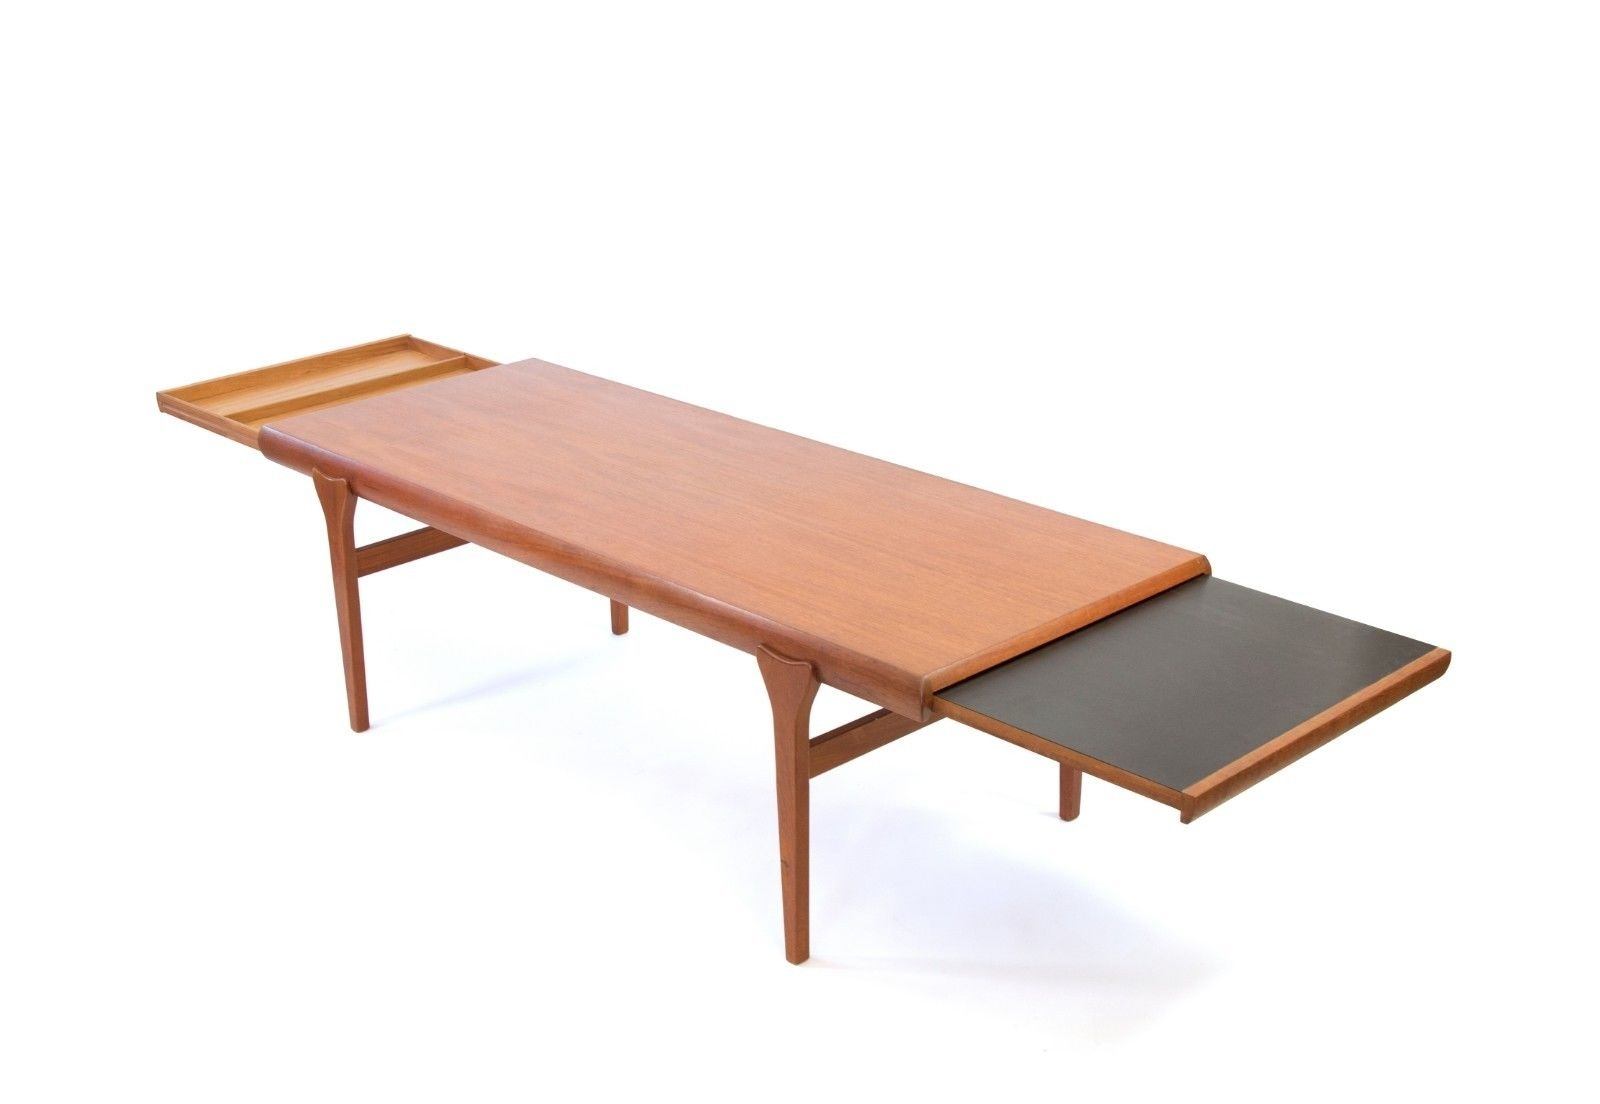 Large Johannes Andersen For Cfc Silkeborg Teak Coffee Table. Free intended for Large Teak Coffee Tables (Image 10 of 30)